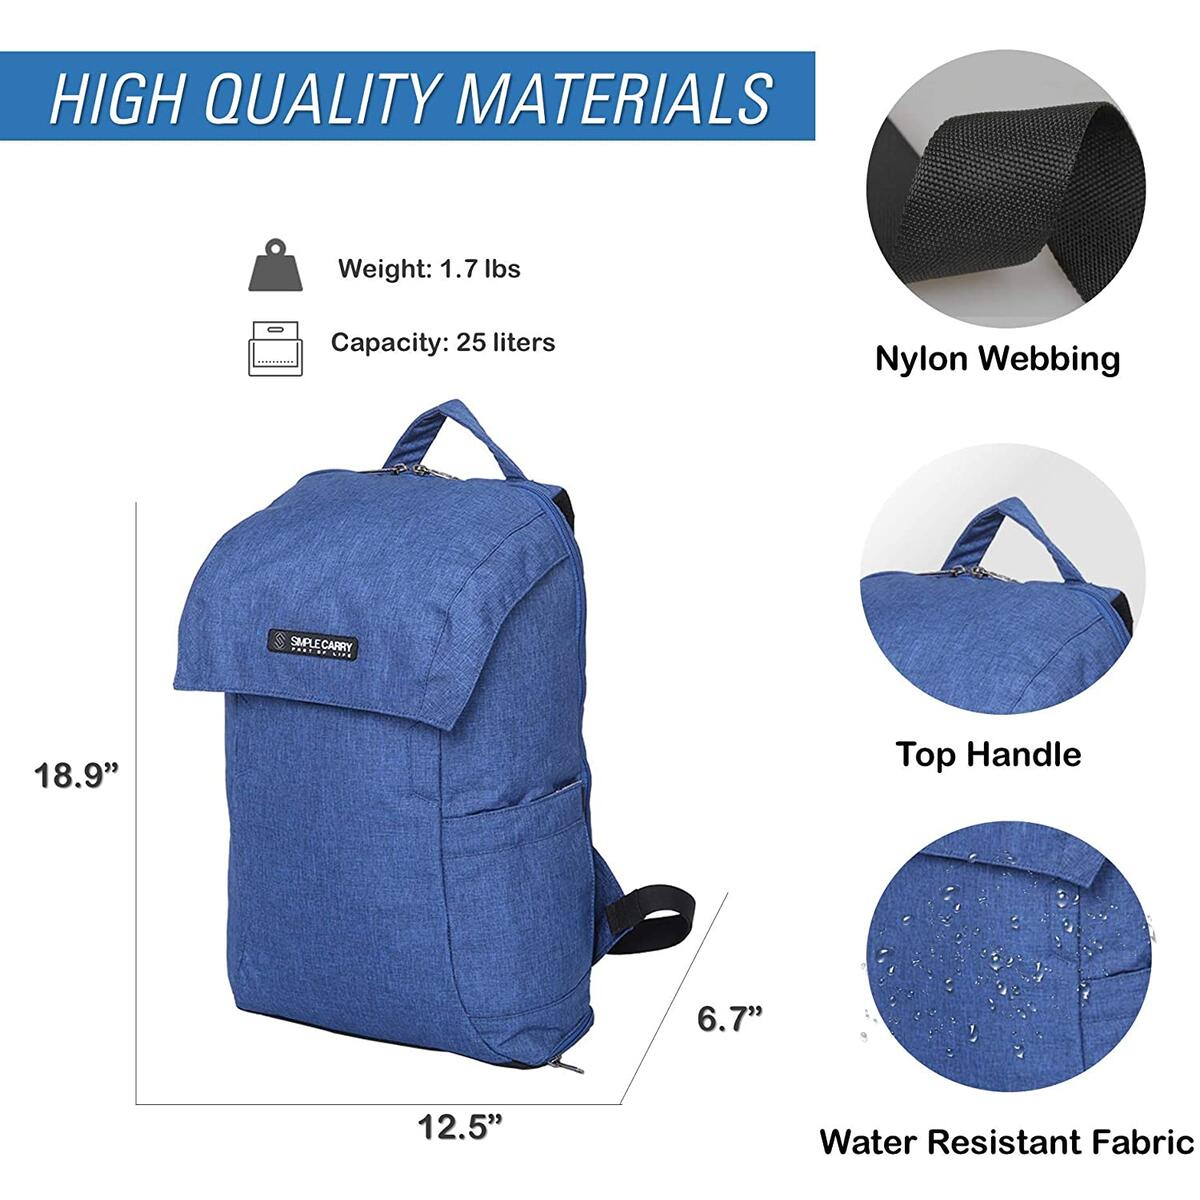 SIMPLECARRY Mattan2 Office College School Travel Hiking Backpack – Daypack for Camping, Running, Climbing– Water Resistant and Durable - Perfect for Men and Women (Nevy Blue)